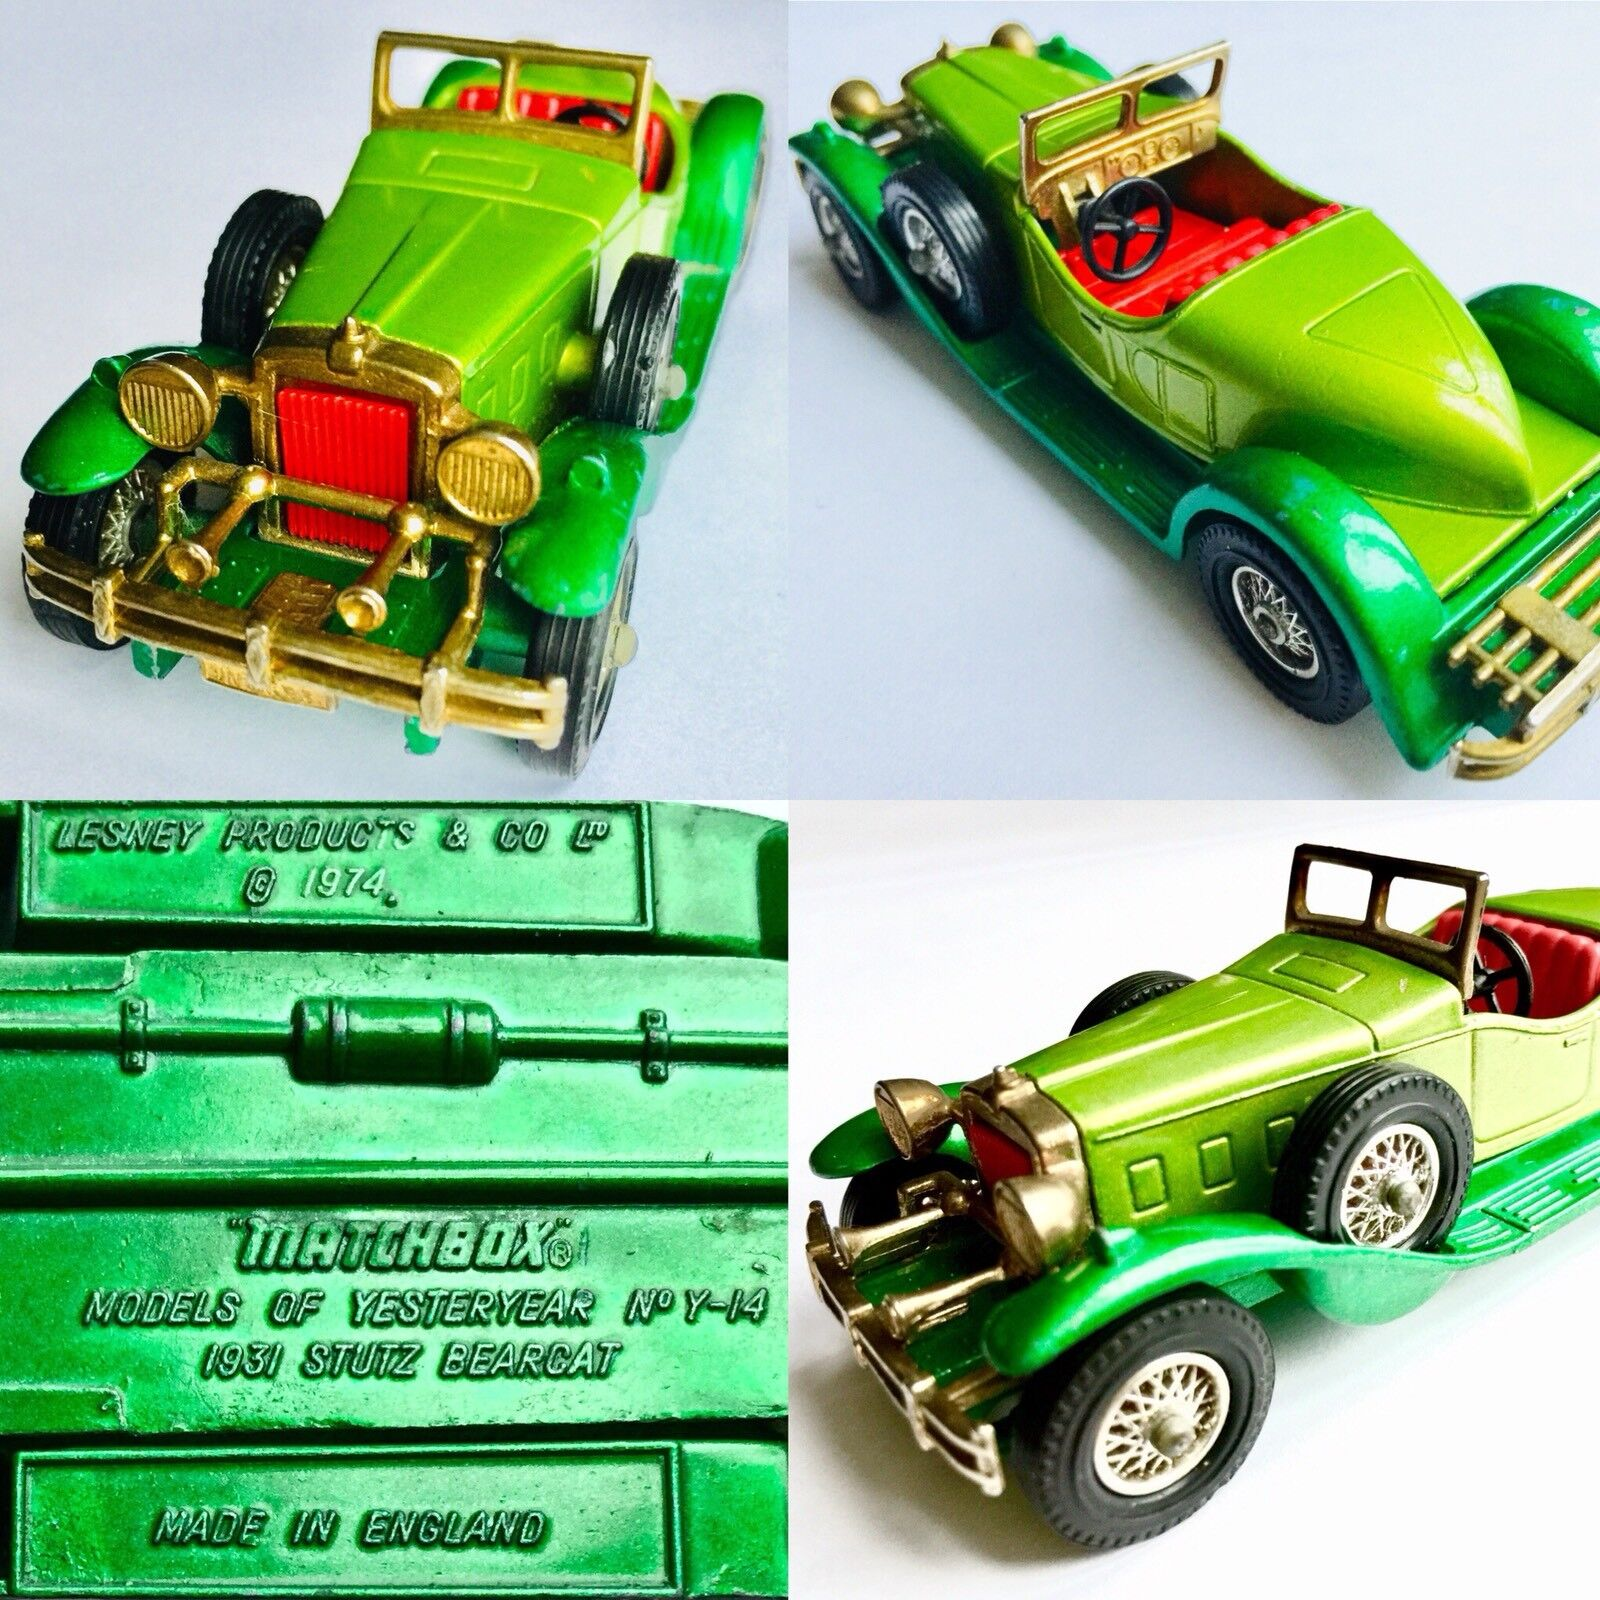 Matchbox Models of Yesteryear No Y-14 1931 Stutz Bearcat (Lensey Products 1974)